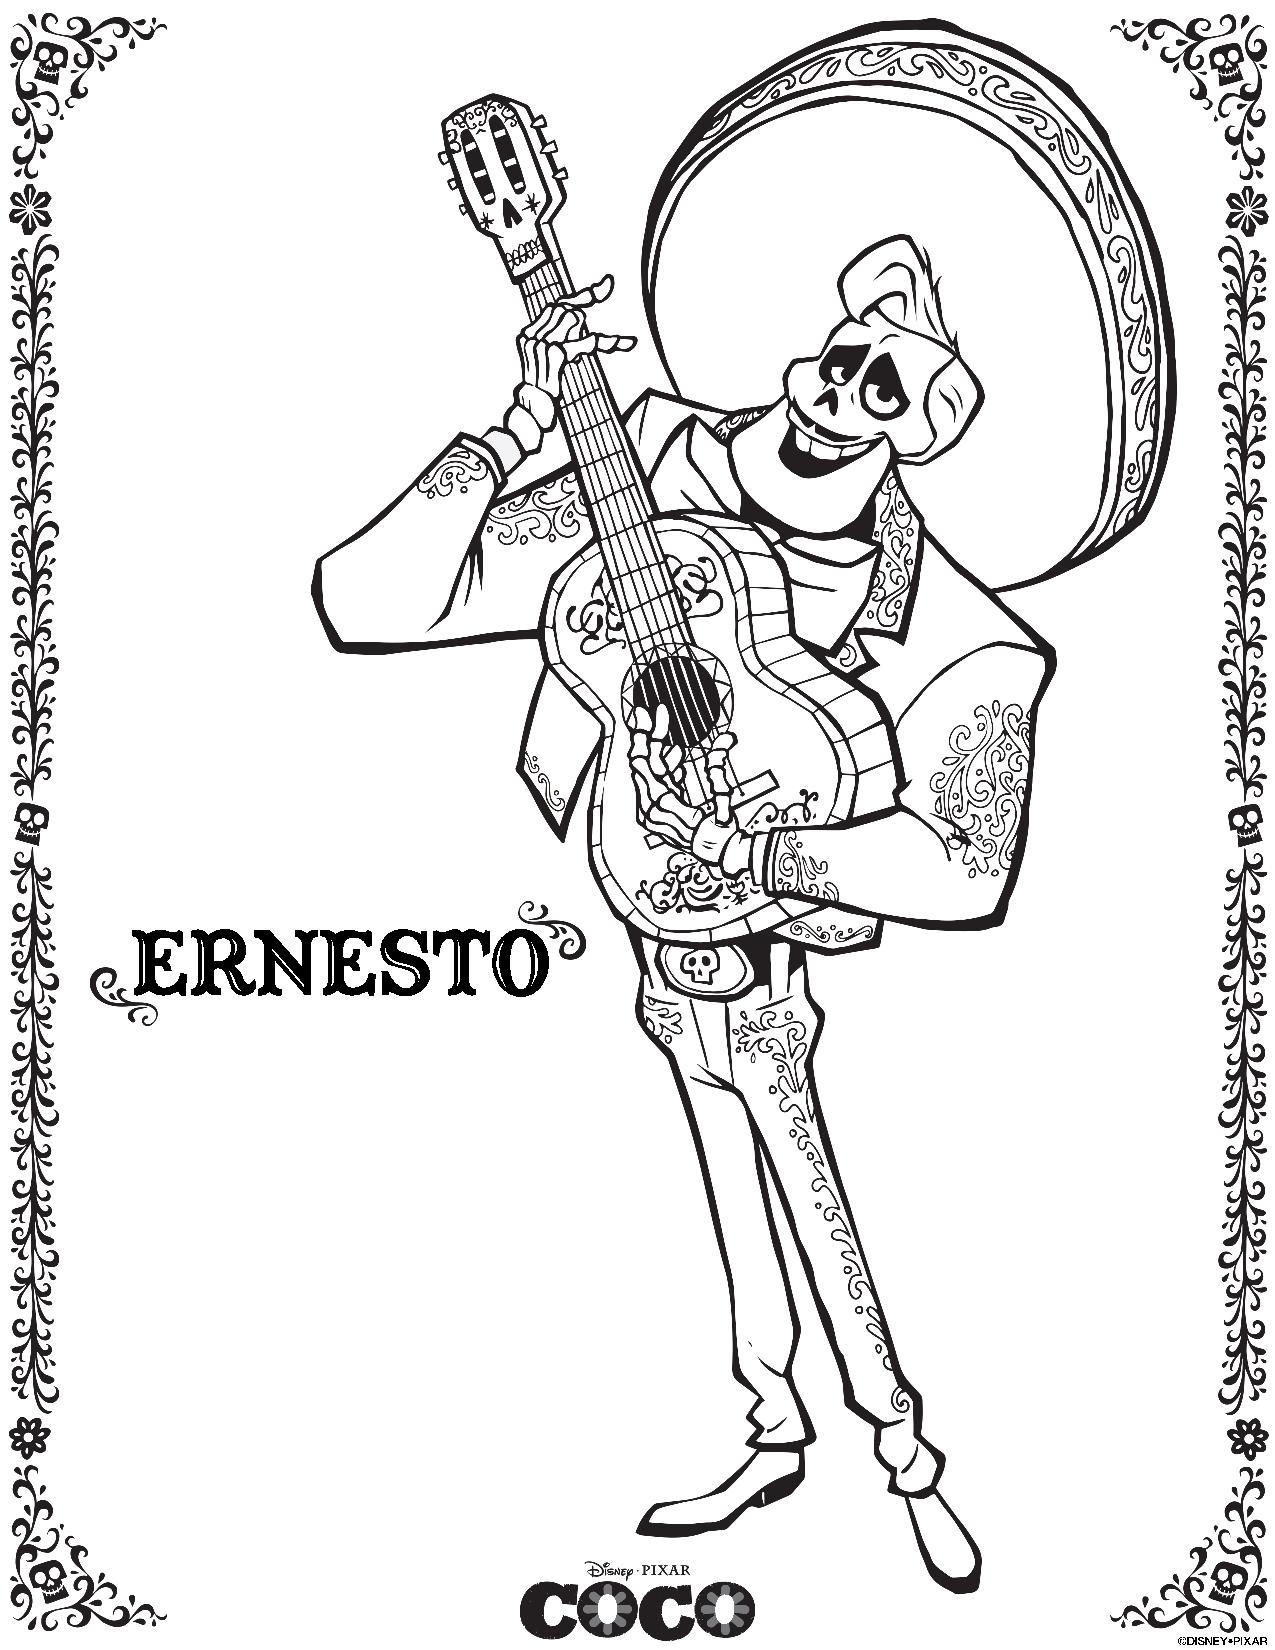 coco skelton ernesto-day of the dead coloring